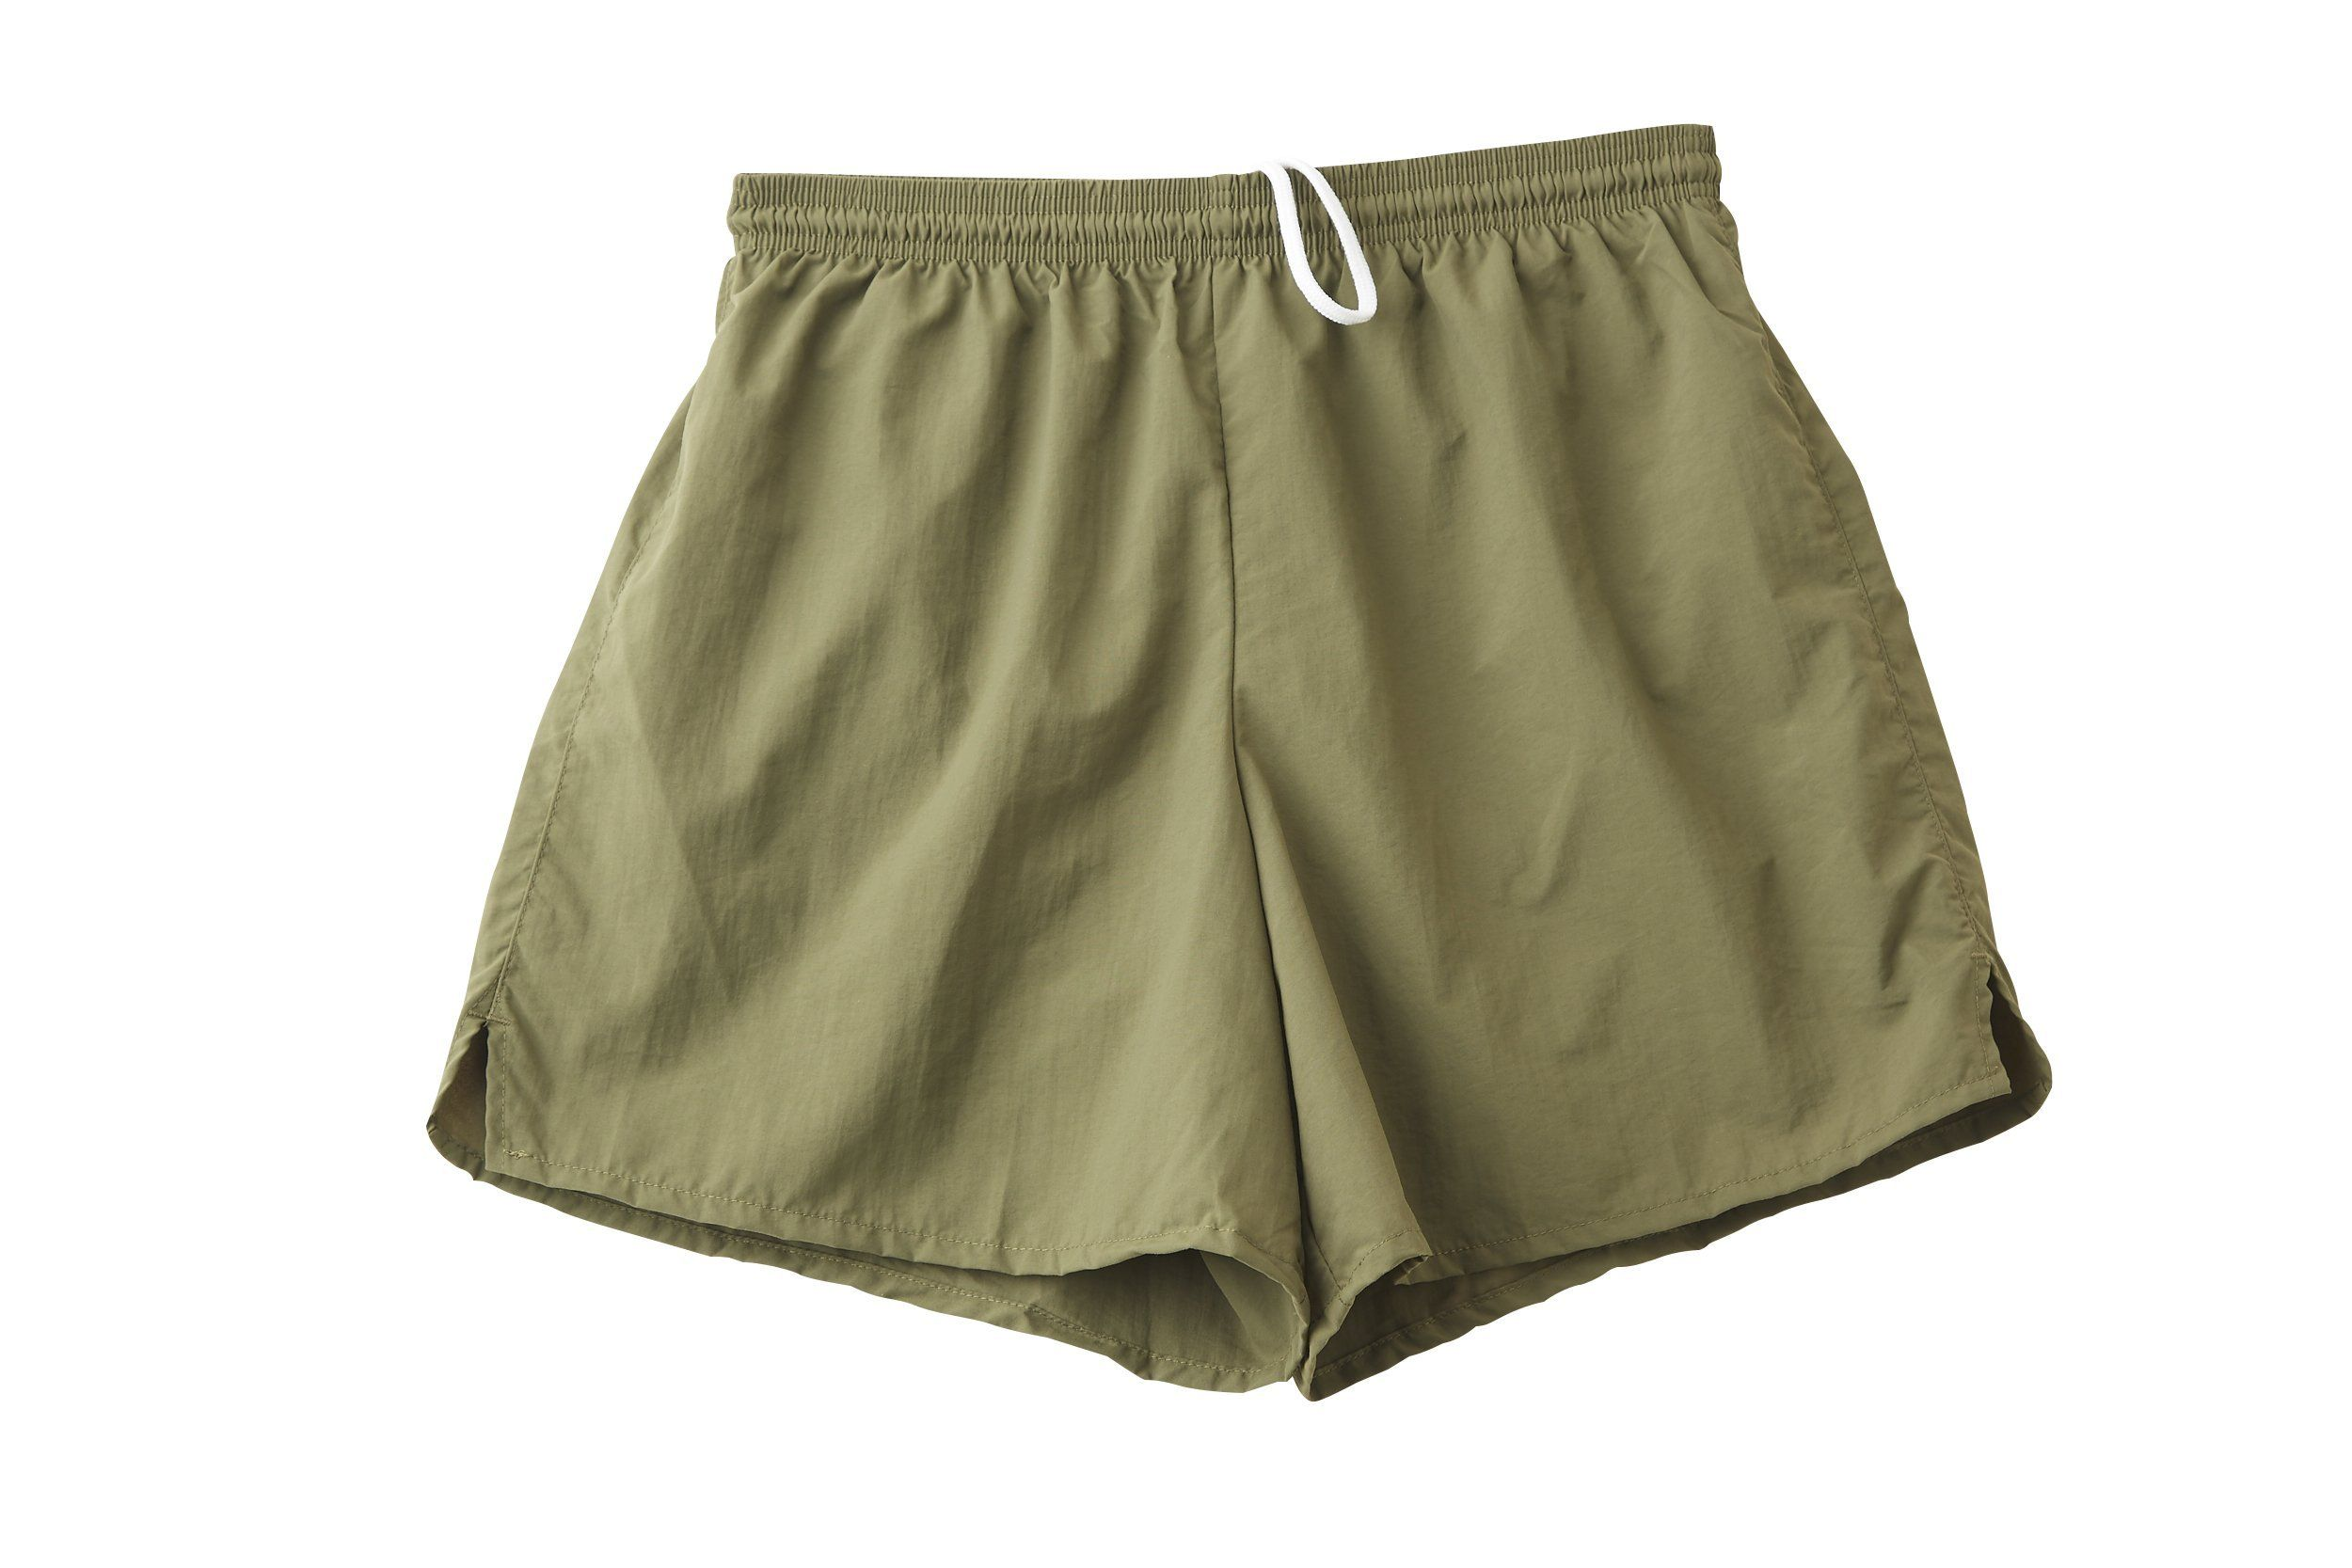 a2e523736 Bulldog Running Shorts (XL/Large). US MARINE CORPS ORIGINAL - These are